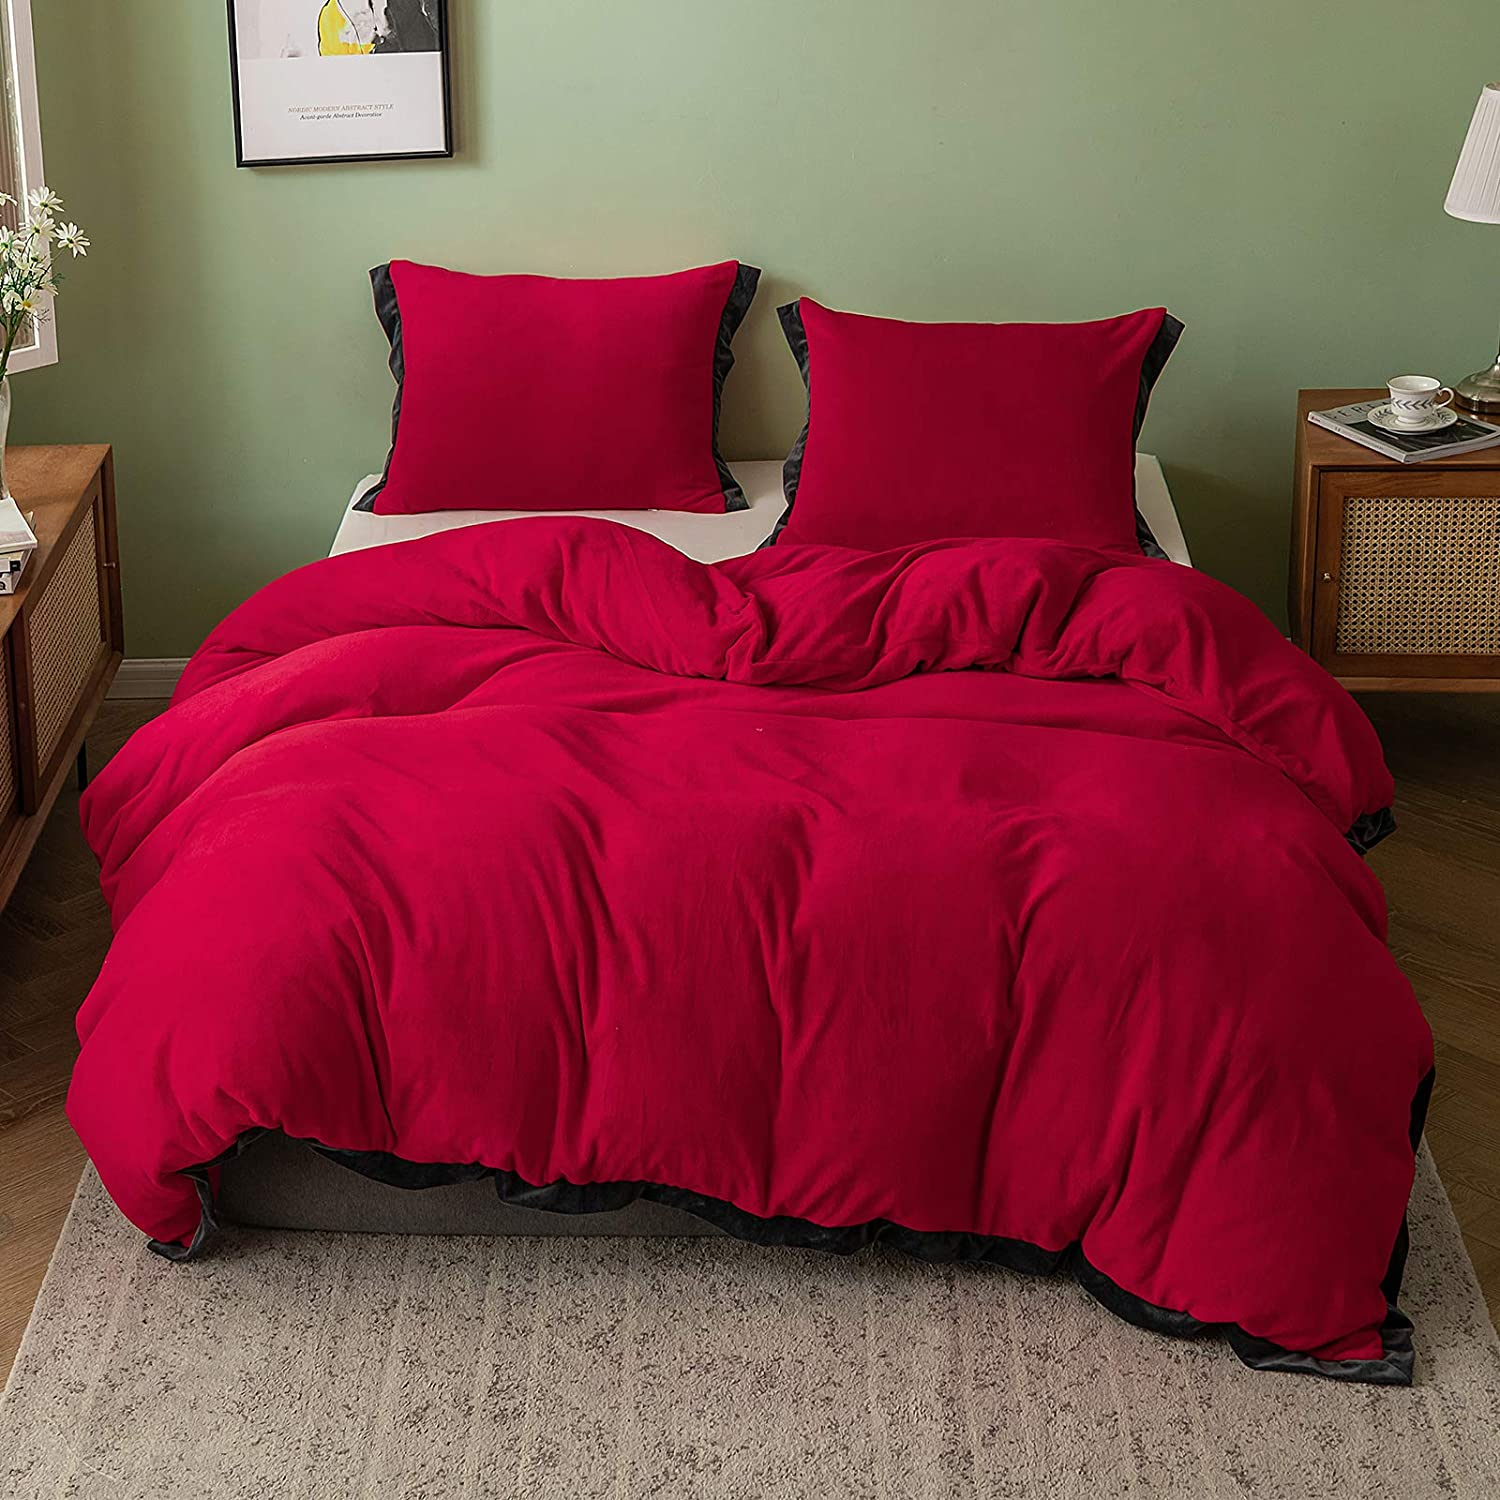 SIGOODS Home Duvet Cover Set 2 Pieces Set-Ultra Soft Skin-Friendly Milk Velvet Beding Decoration-Winter Warm Bedding Comforters Sets with 1 Pillowcase,Claret-Red,Twin 66